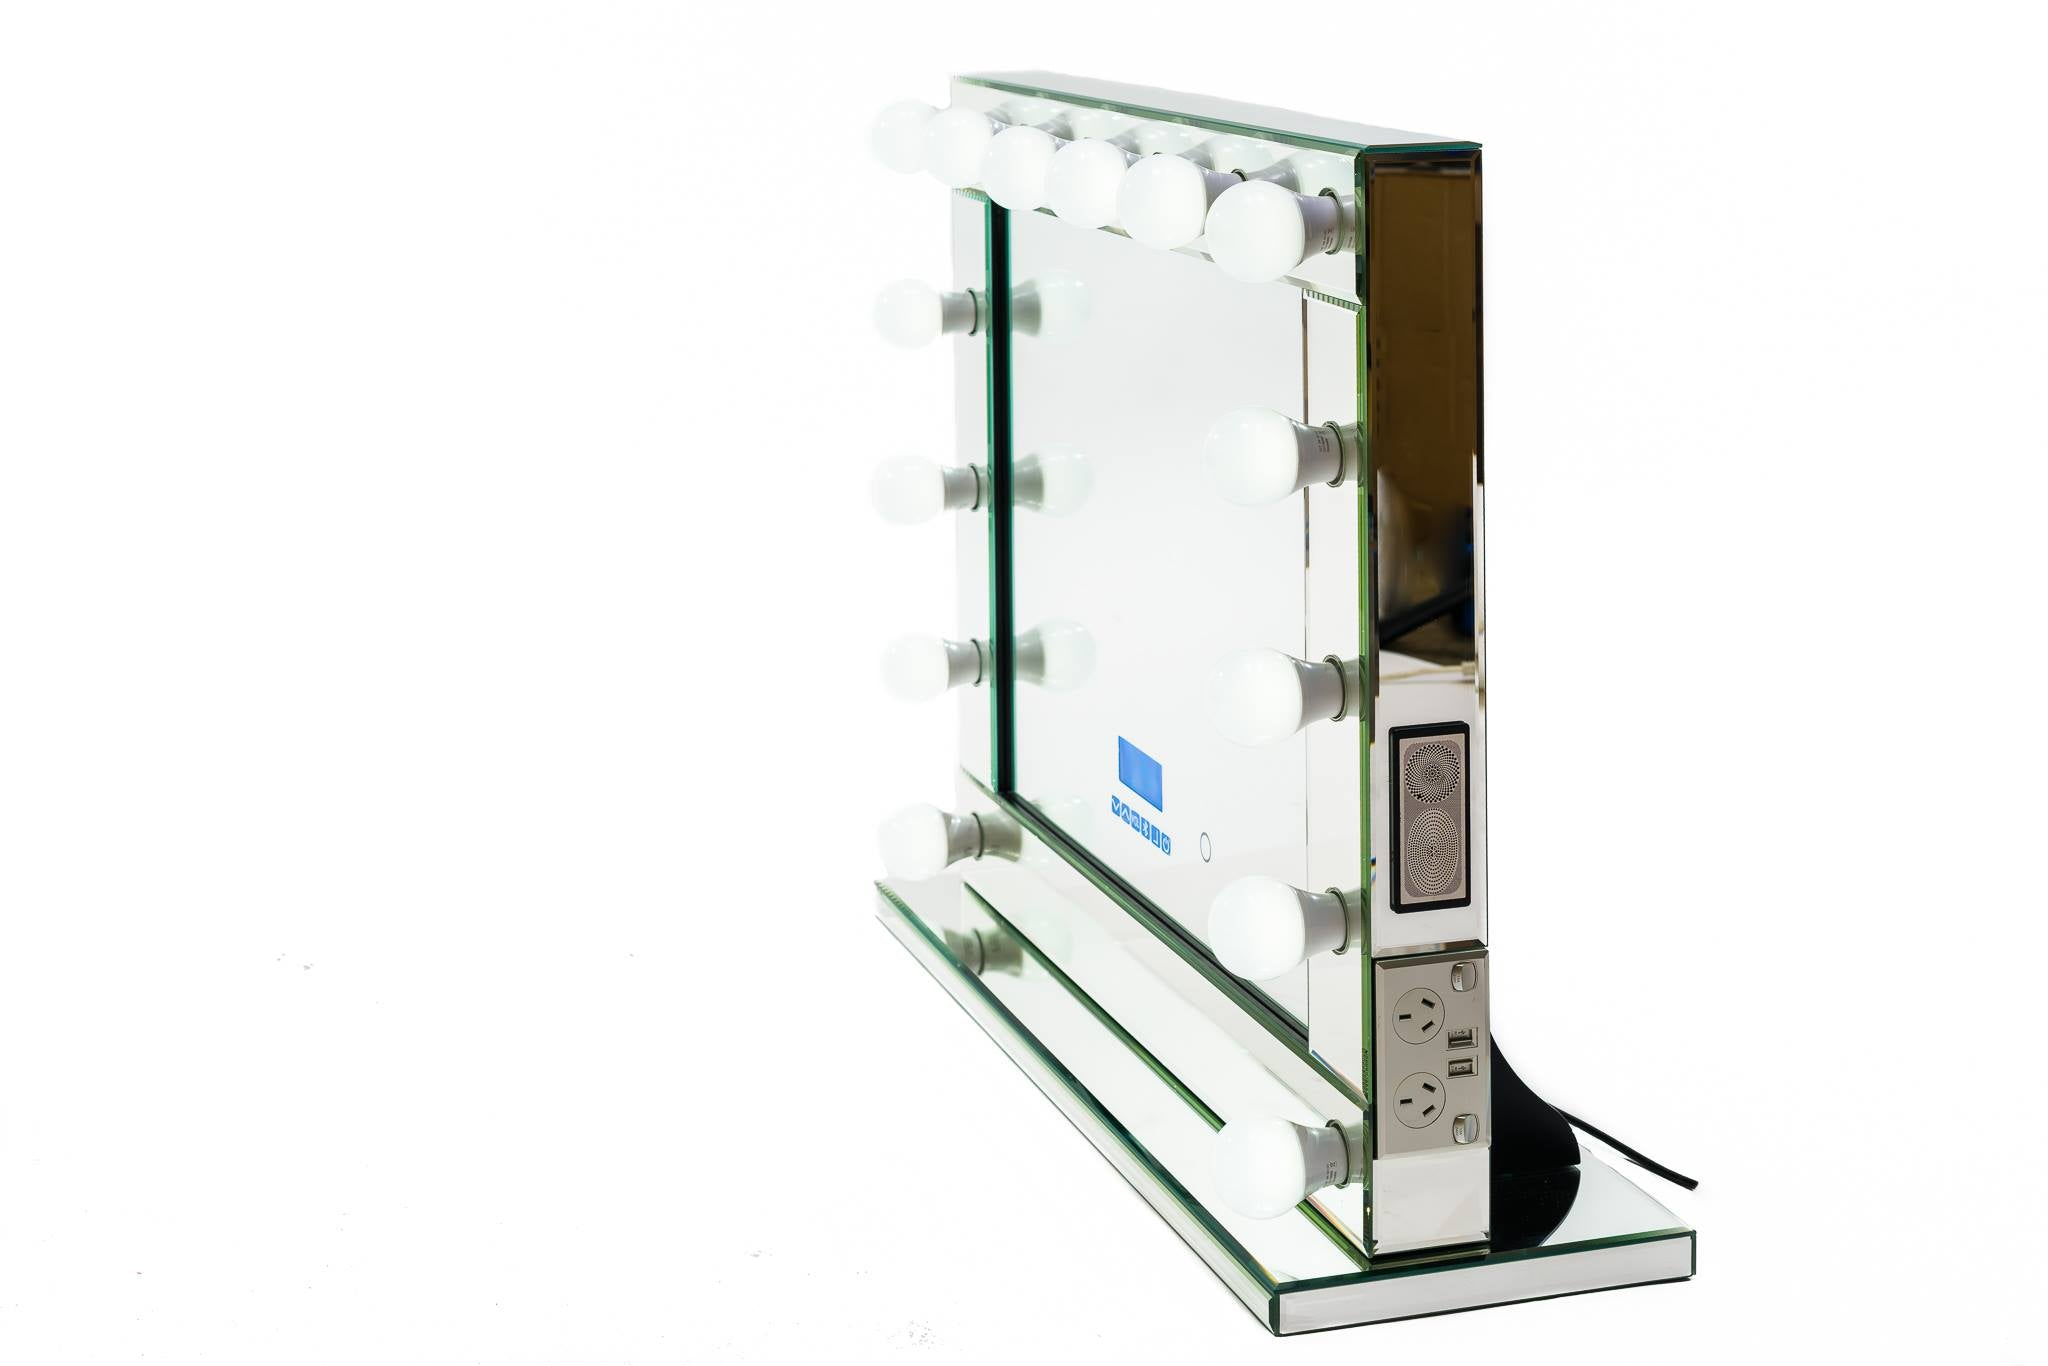 Hollywood Mirror with Bluetooth Speakers Extra Large, Sensor Dimmer,USB,Power Points-SAME DAY SHIPPING LIMITED STOCK